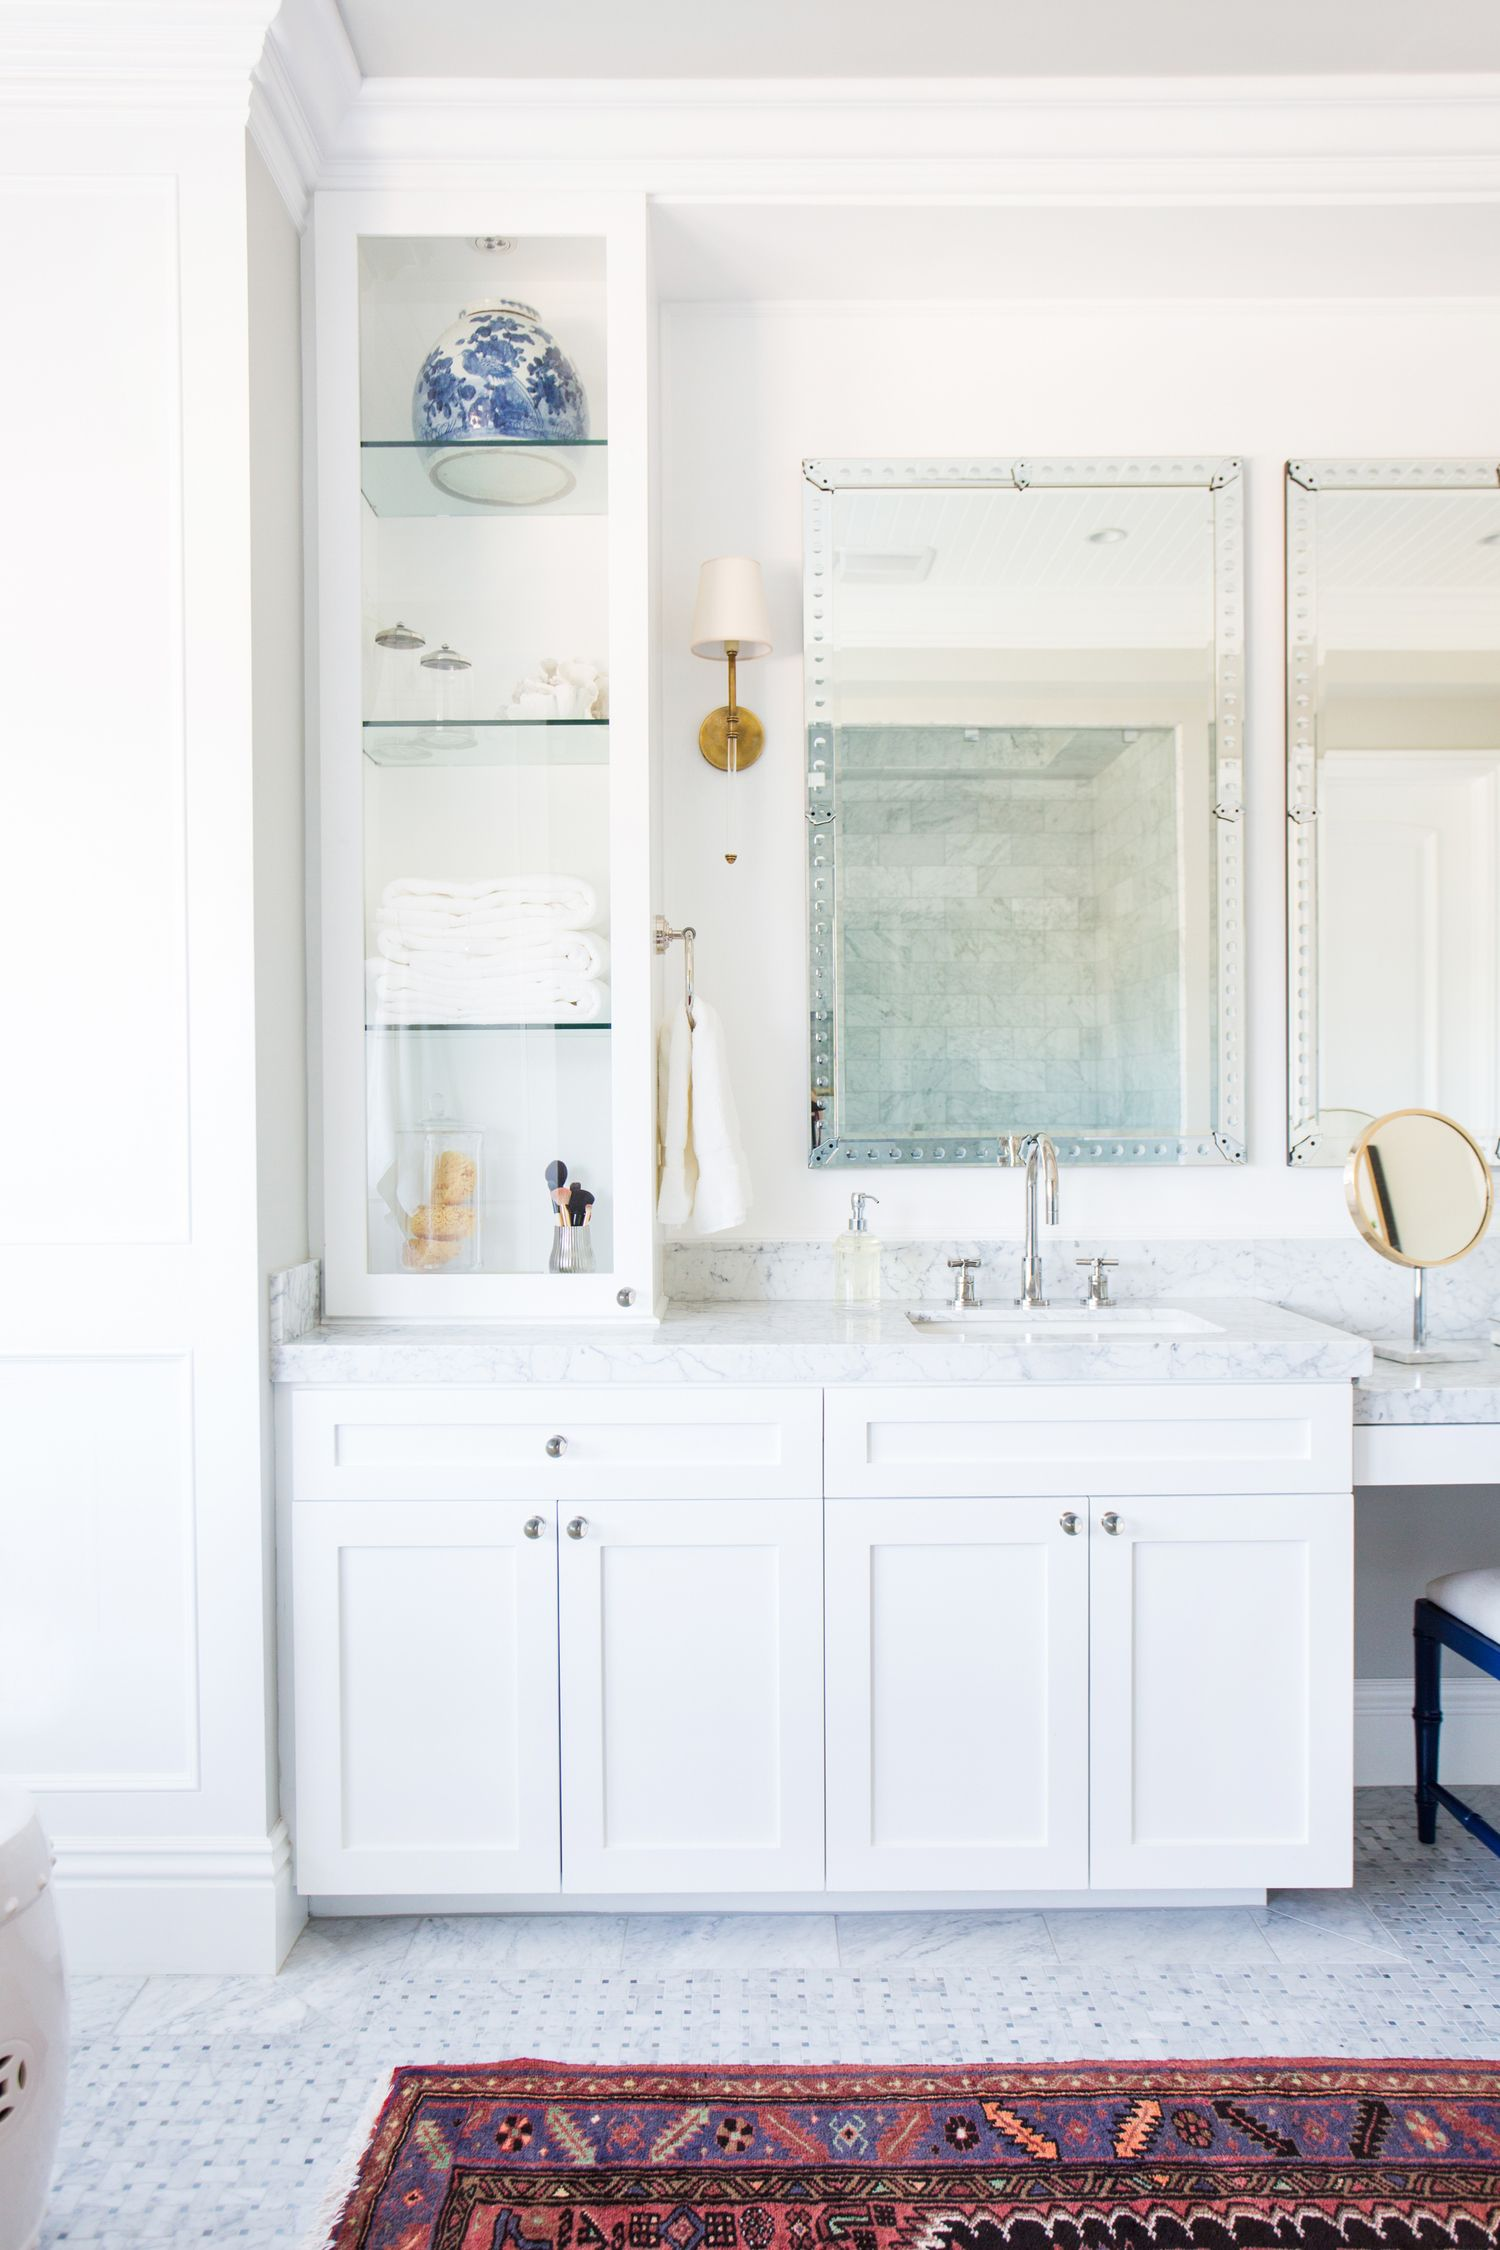 Pacific palisades project master bedroom and bath marble floor